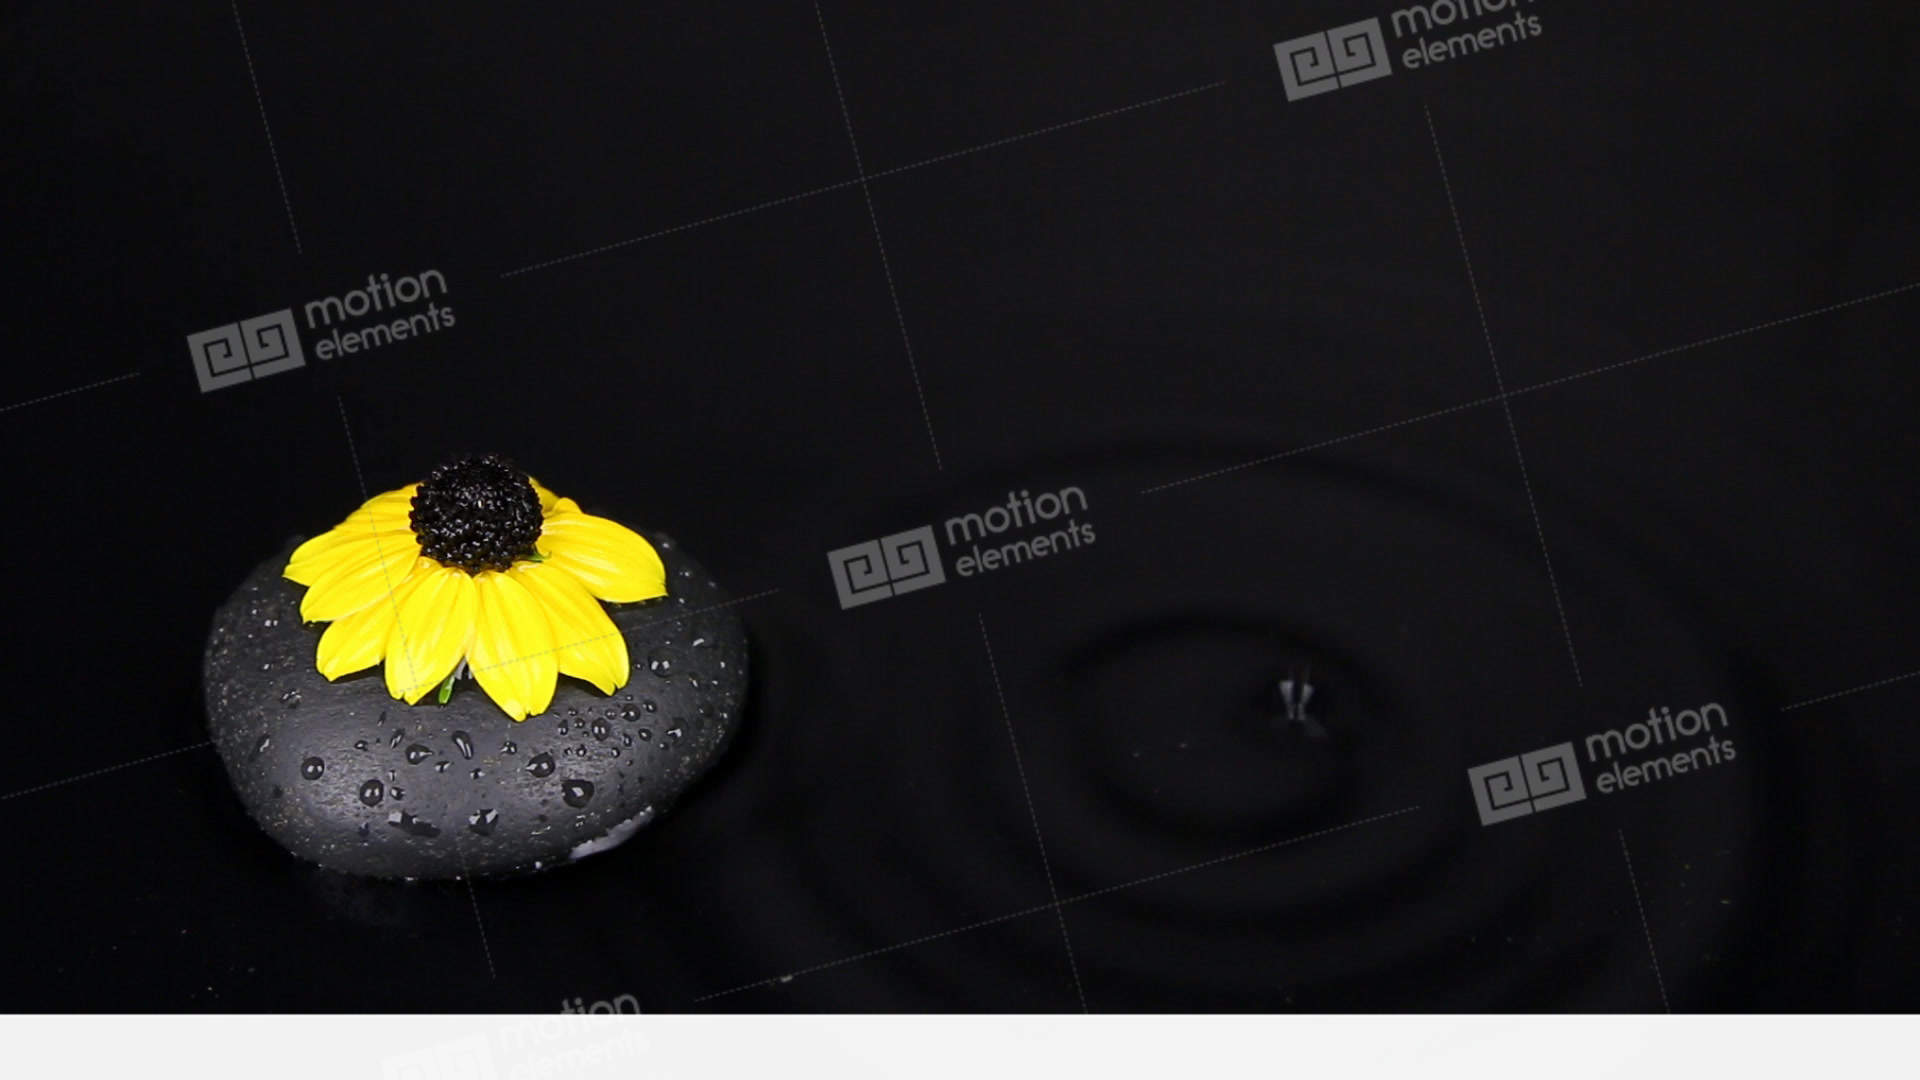 Falling Drops Into Water With Black Stone And Yellow Flower Splash